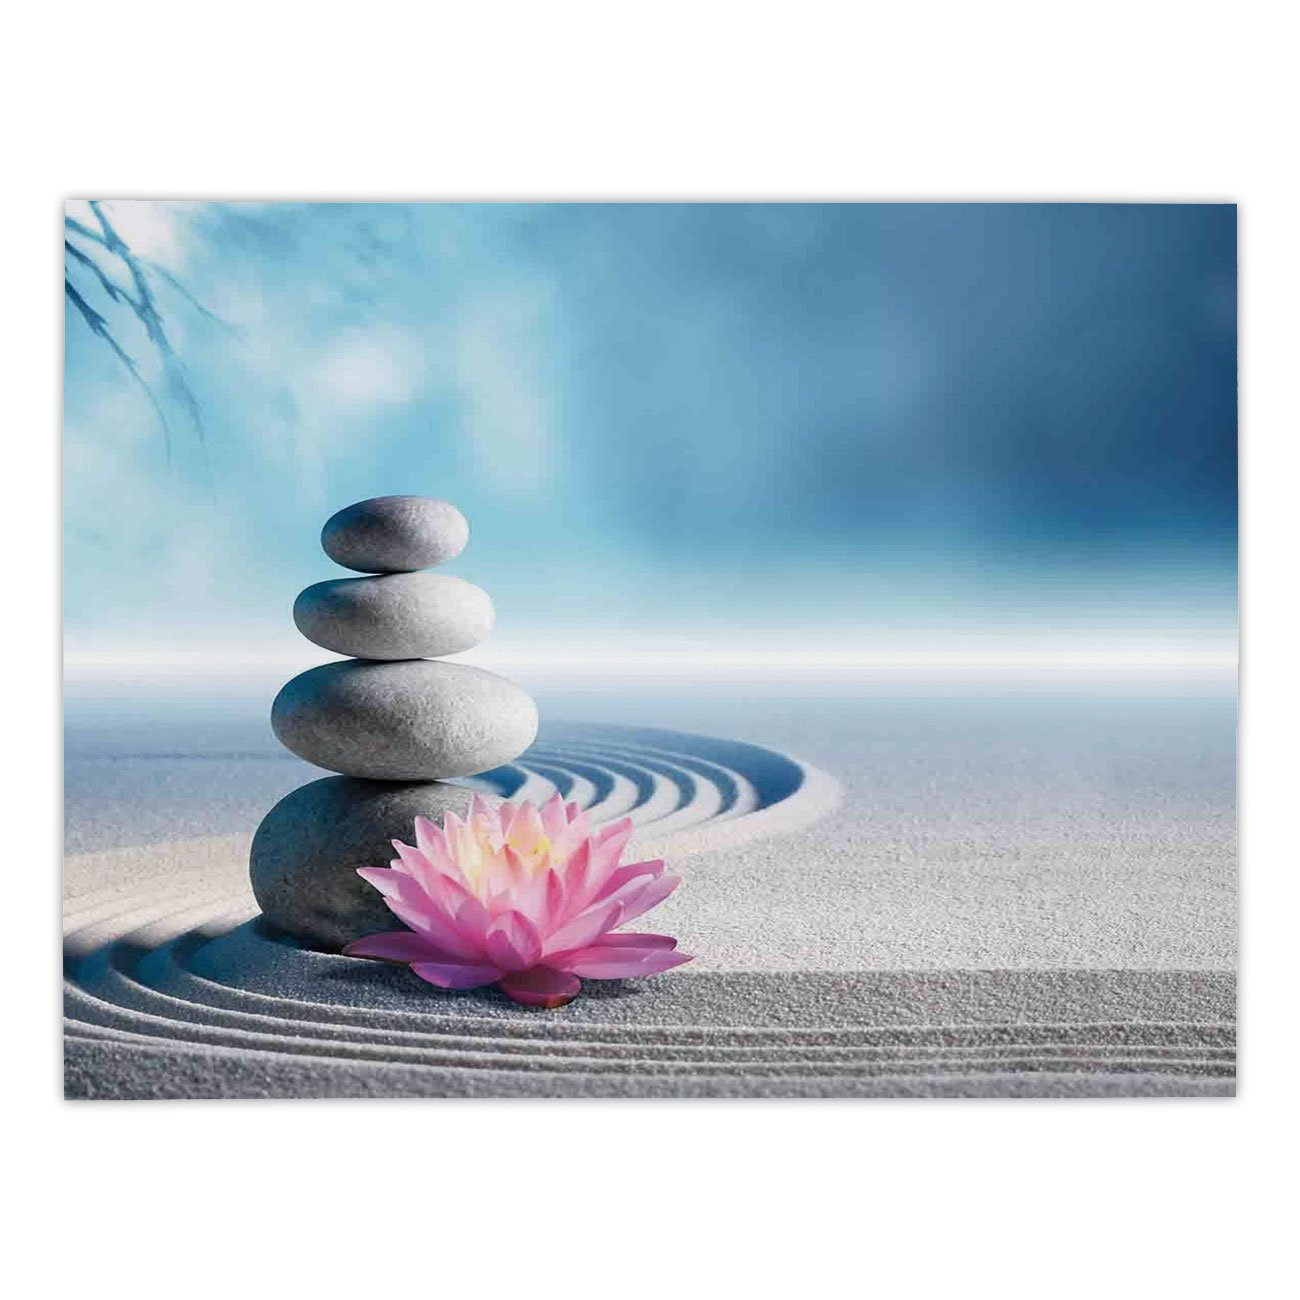 iPrint Rectangular Satin Tablecloth,Spa Decor,Stones and Lotus Flower over Sand Meditation Harmony Balance Flourish Your Spirit Theme,Grey Blue Pink,Dining Room Kitchen Table Cloth Cover by iPrint (Image #1)